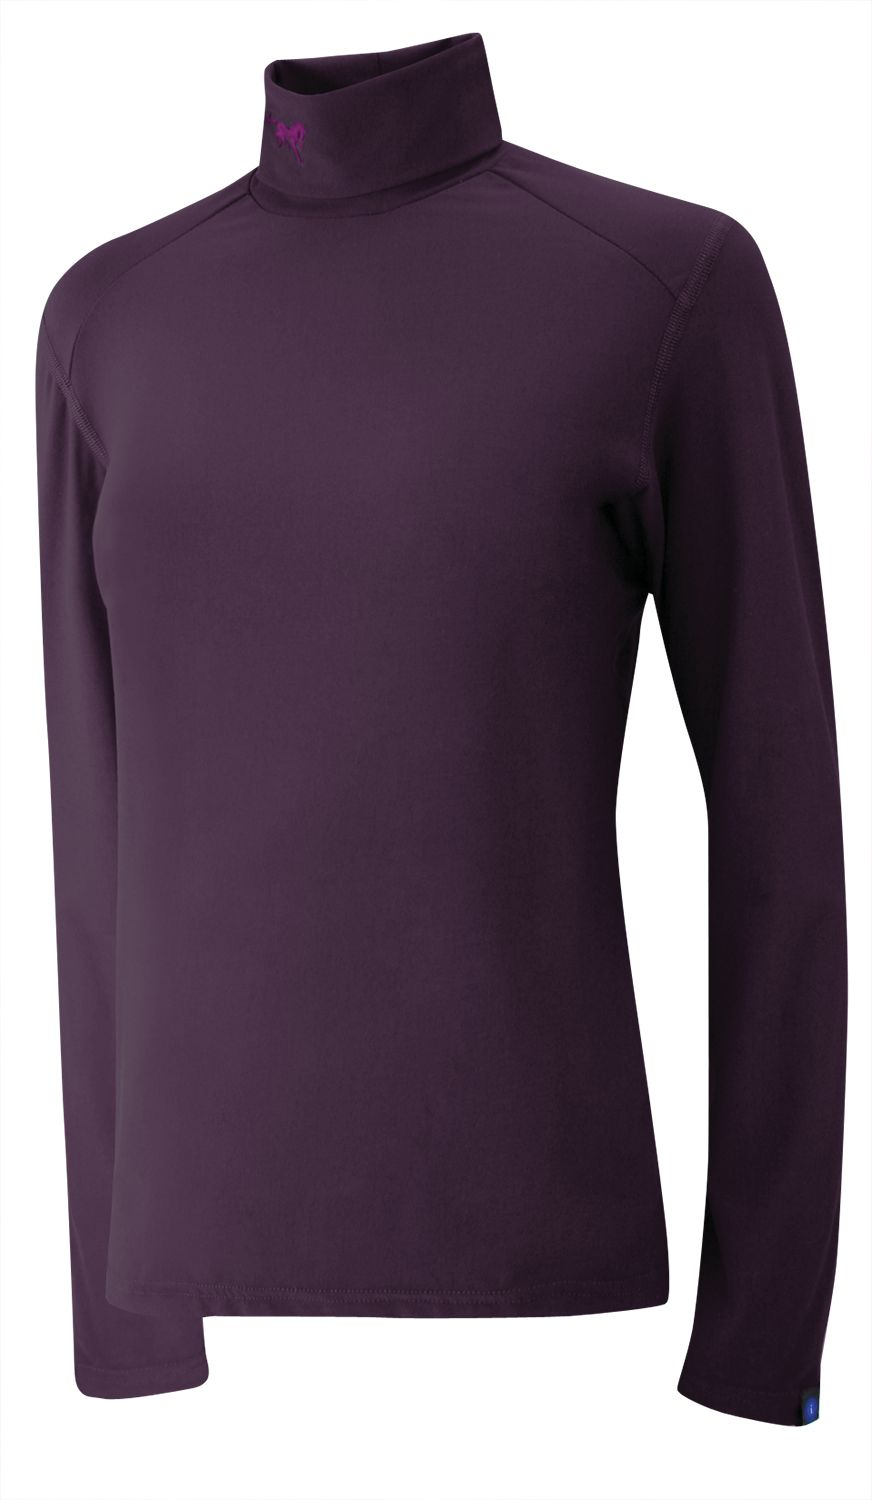 Irideon Ladies' Thermalux Turtleneck